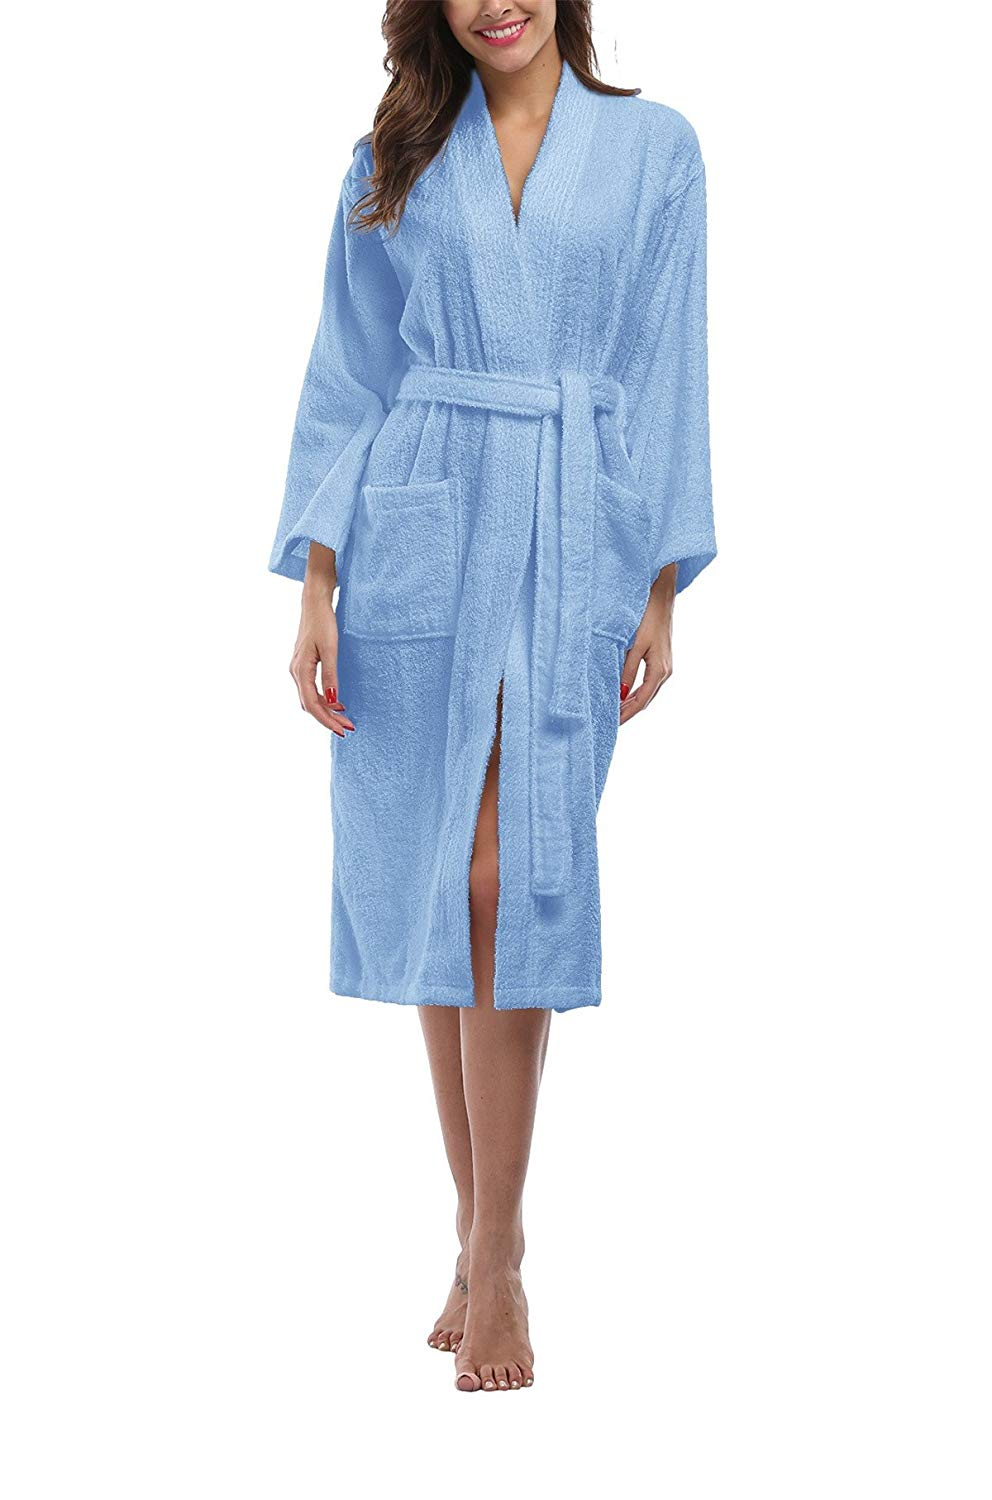 cecfa90bce Get Quotations · FADSHOW Women s Terry Cloth Robes